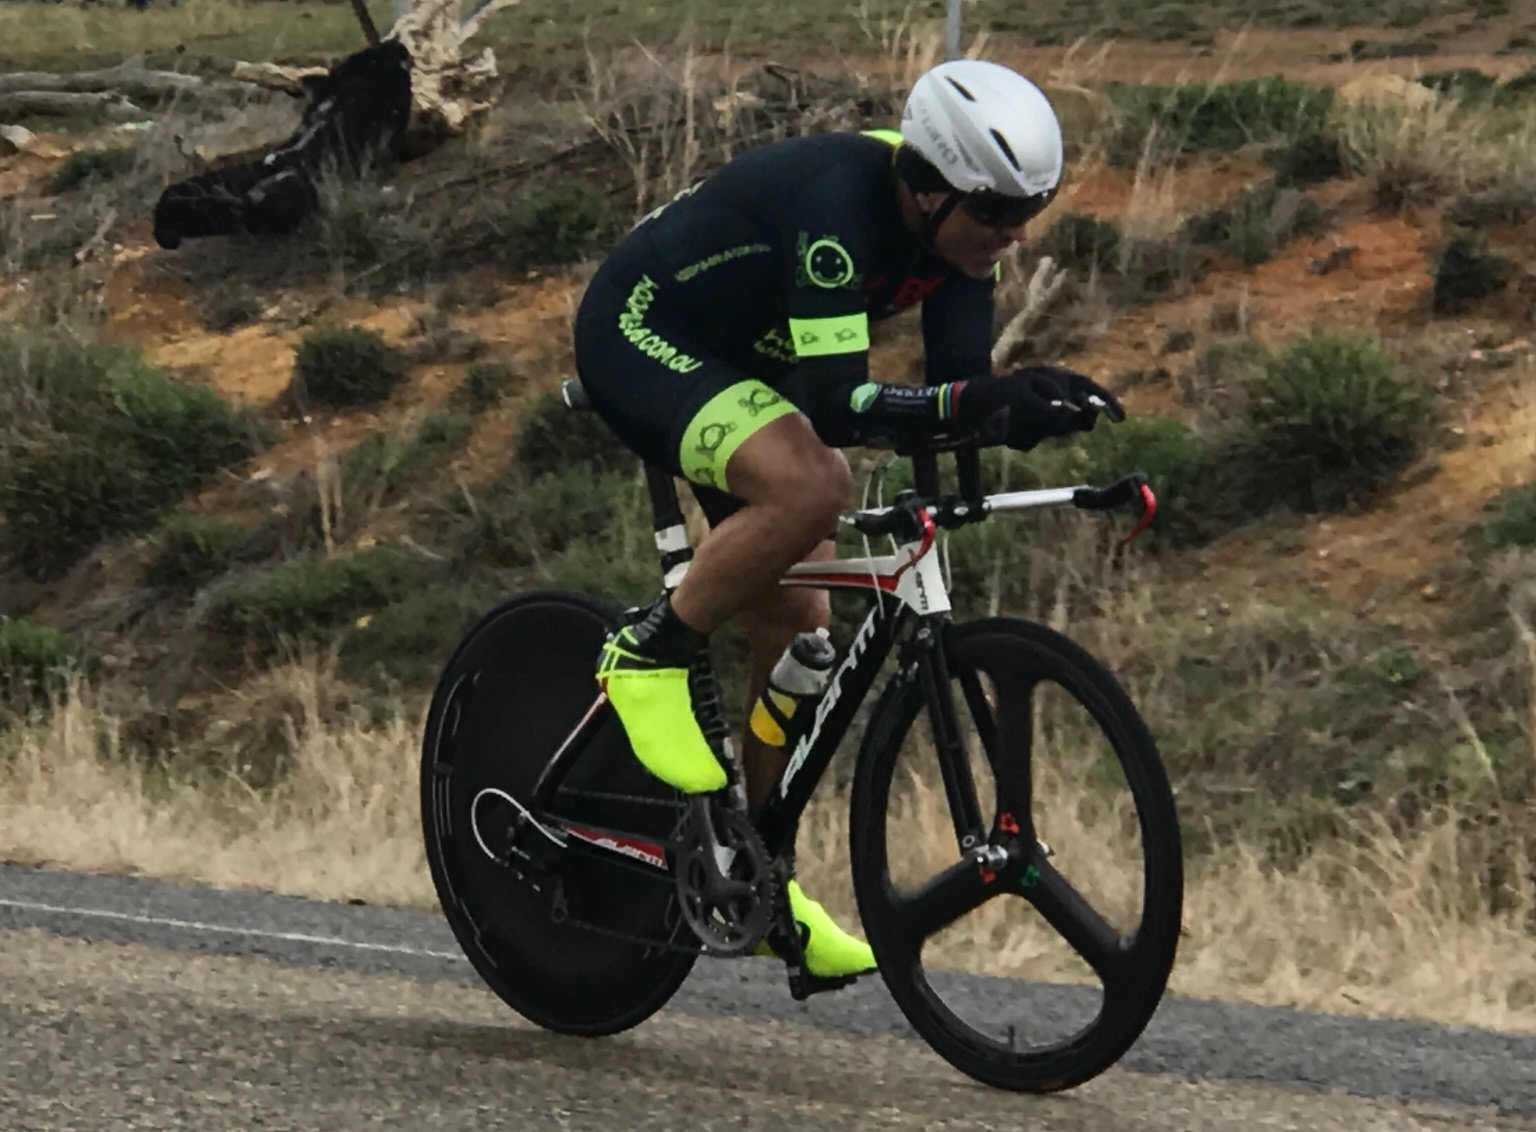 Masters ITT Championships @ Gunning @ 7 Sept - Dom Zumbo on a cracking ride for a strong 8th place in M6